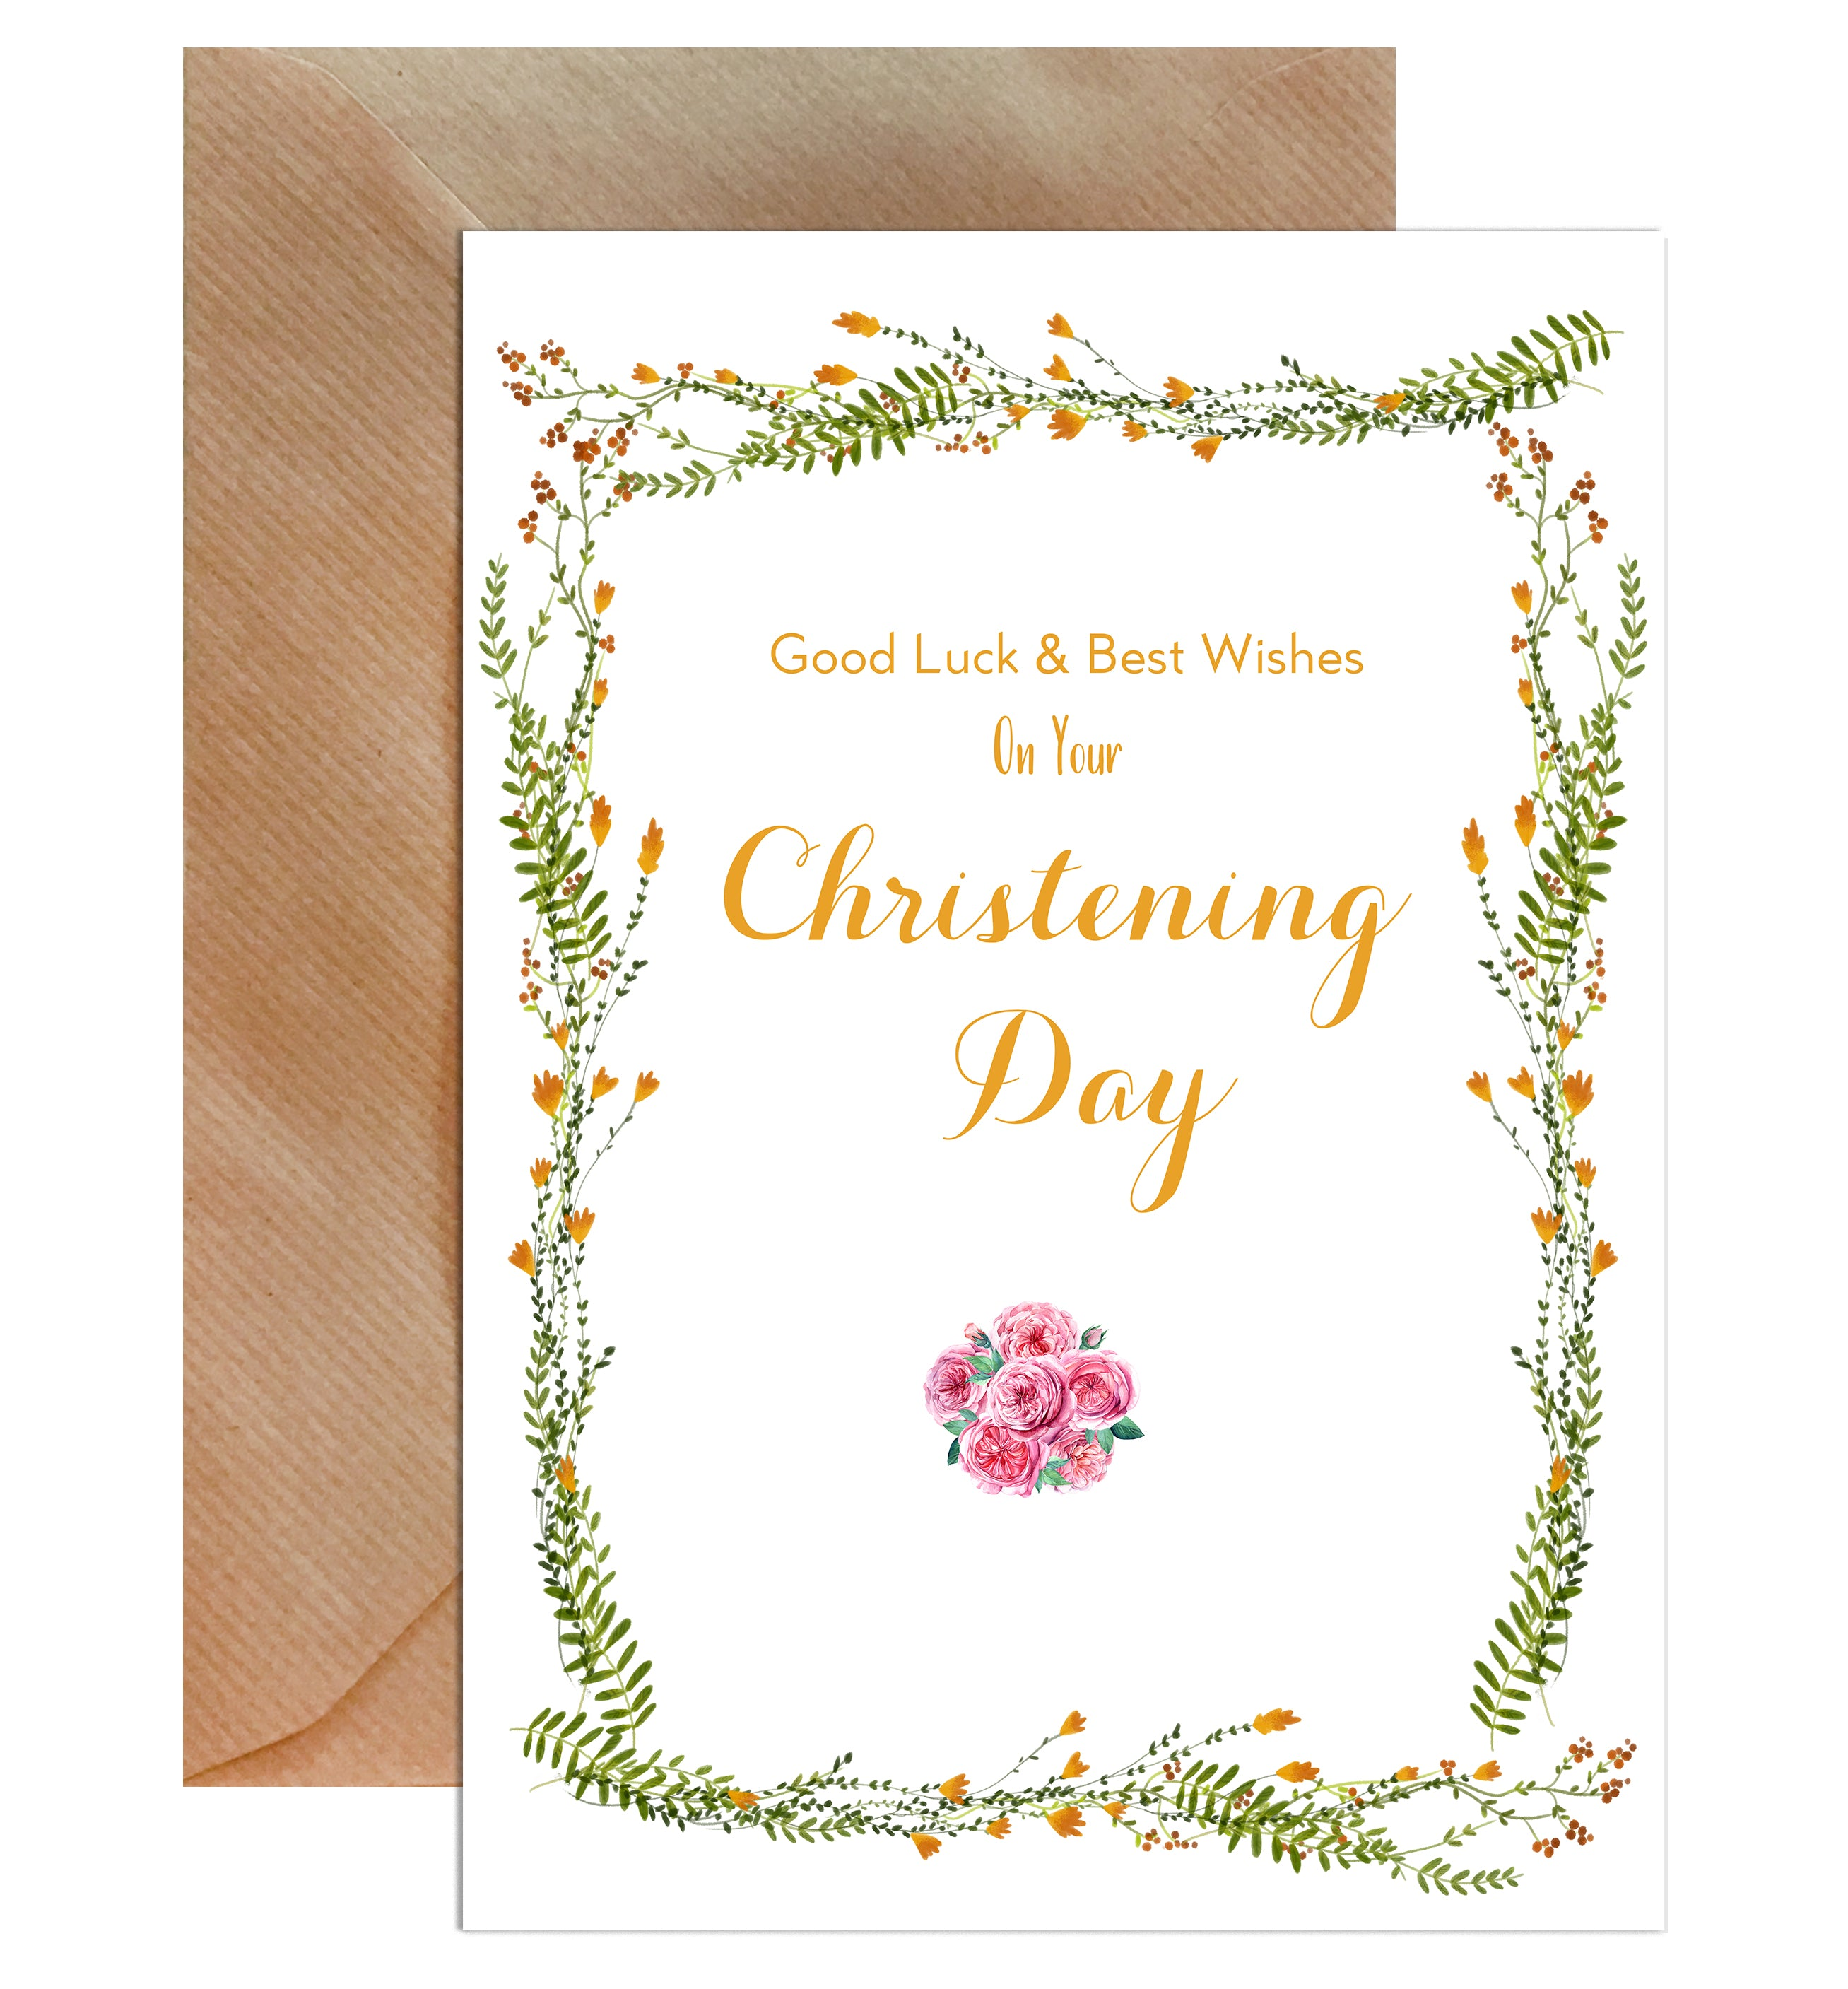 Congratulations on your christening day greeting card mode prints congratulations on your christening day greeting card m4hsunfo